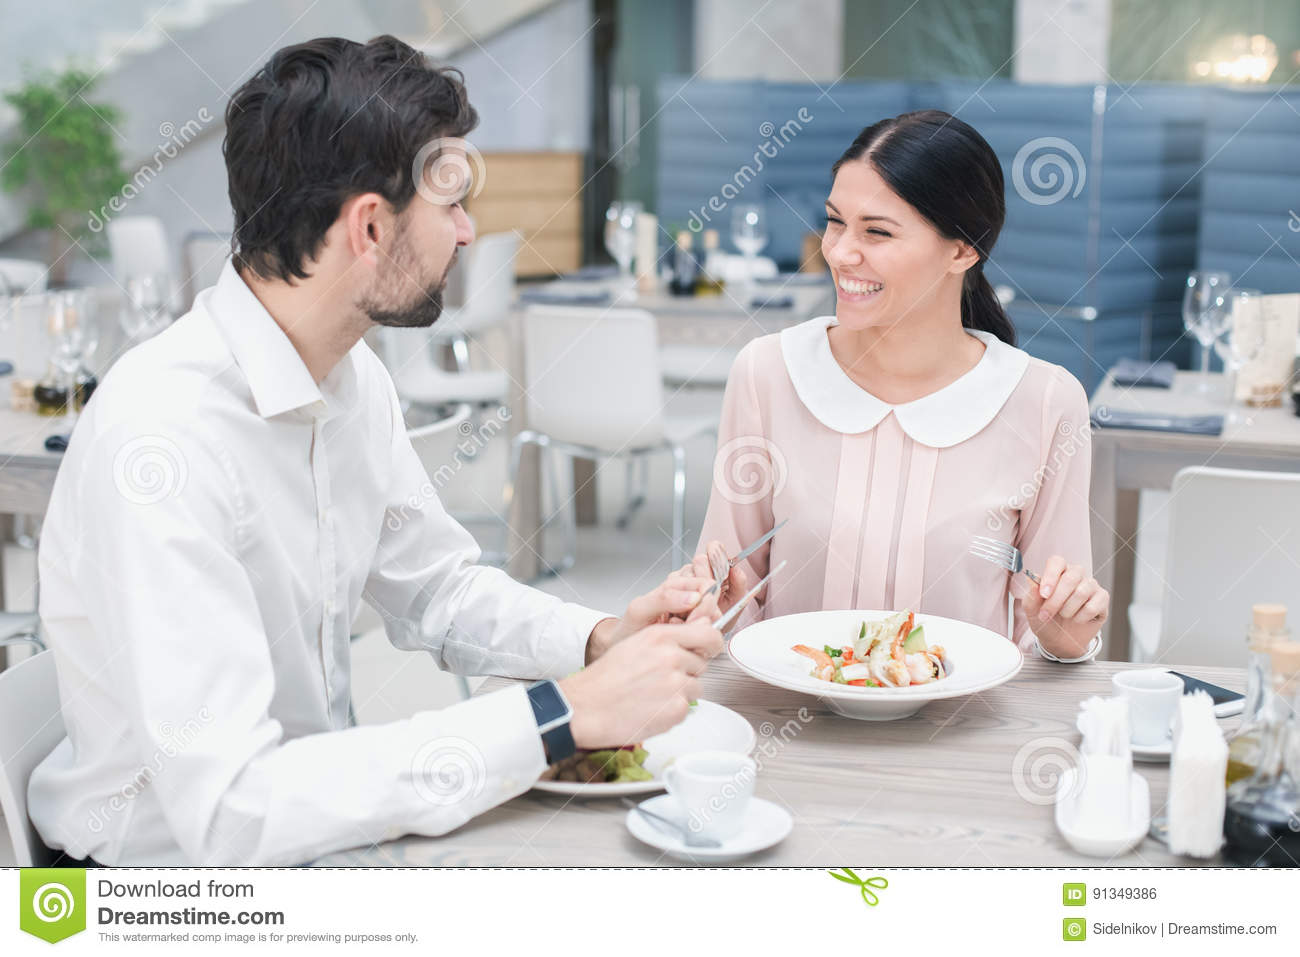 Romantic Date In Luxury Restaurant Stock Photo Image Of Casual Cafe 91349386